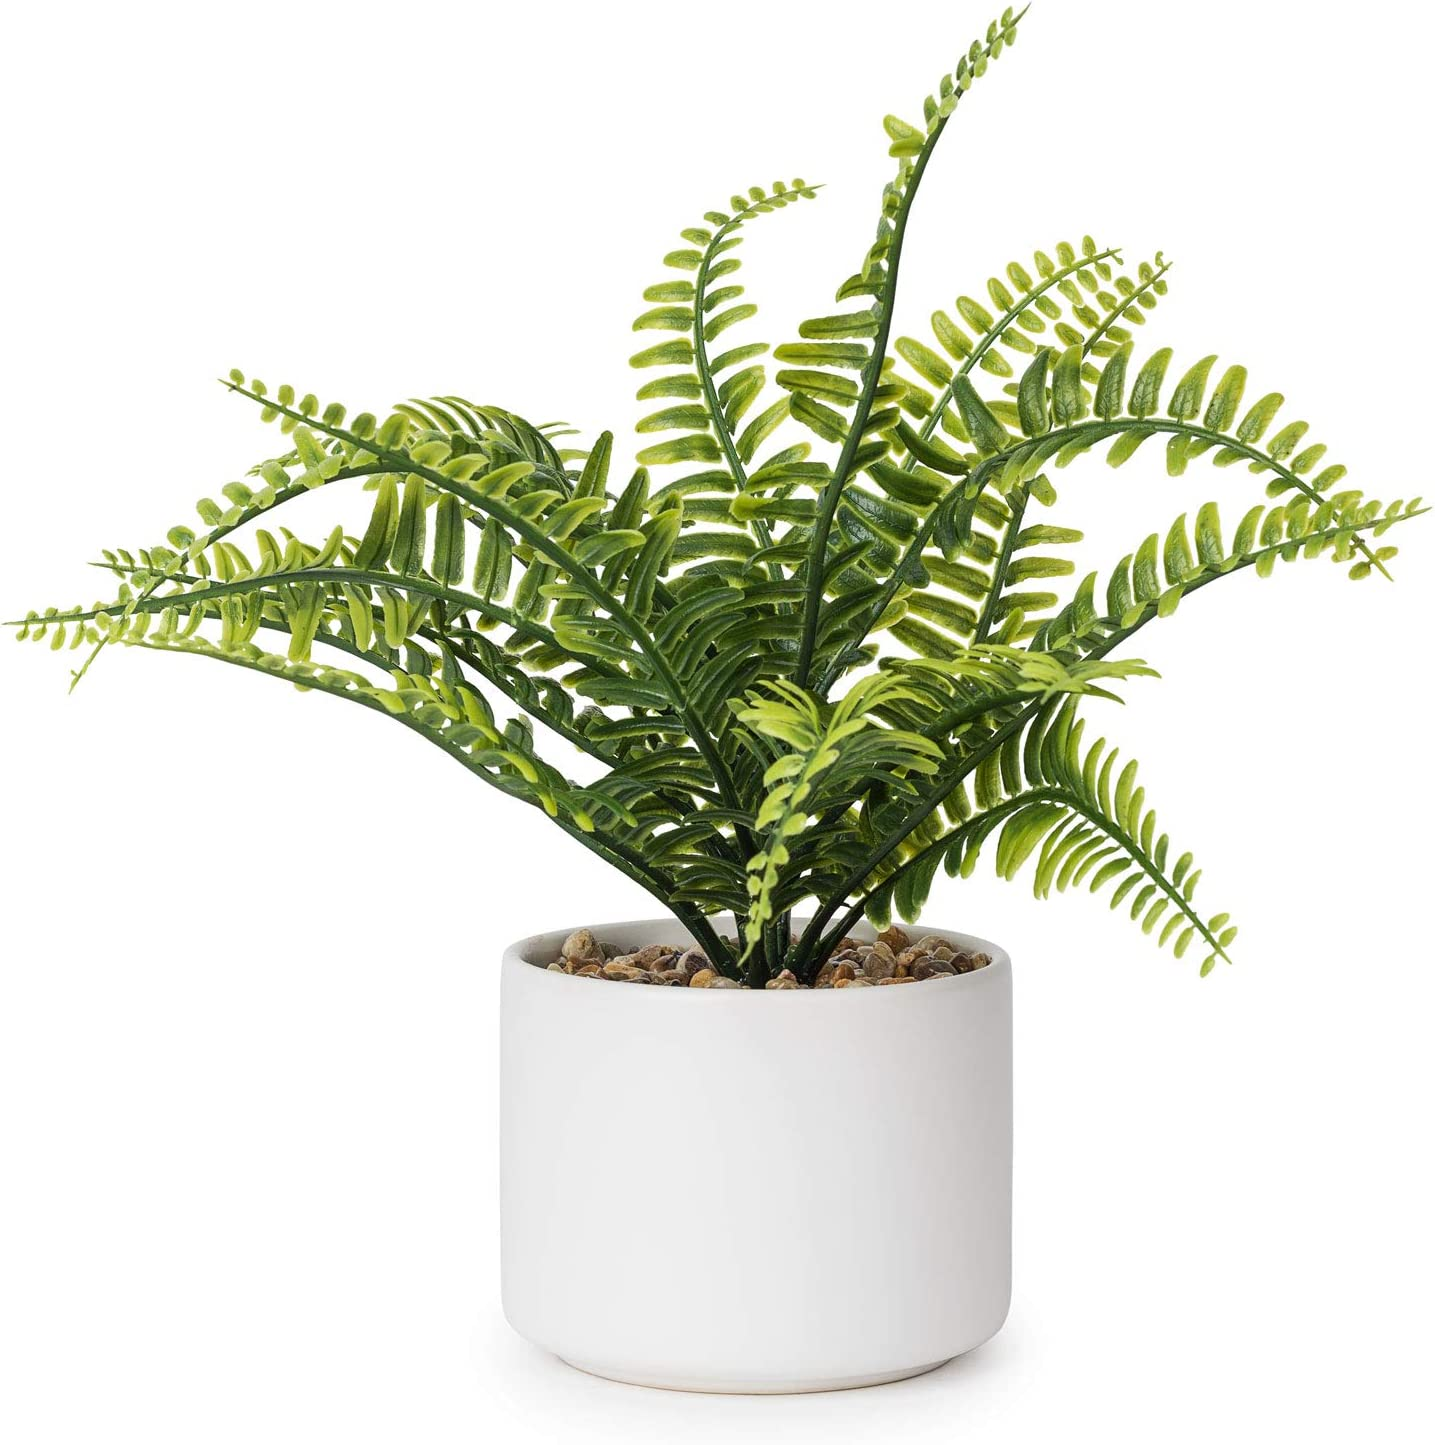 Lvydec Artificial Succulent Plants - Fake Fern Plant with a Ceramic Pot for Home Bath Office Shelf Decoration (Boston Fern)